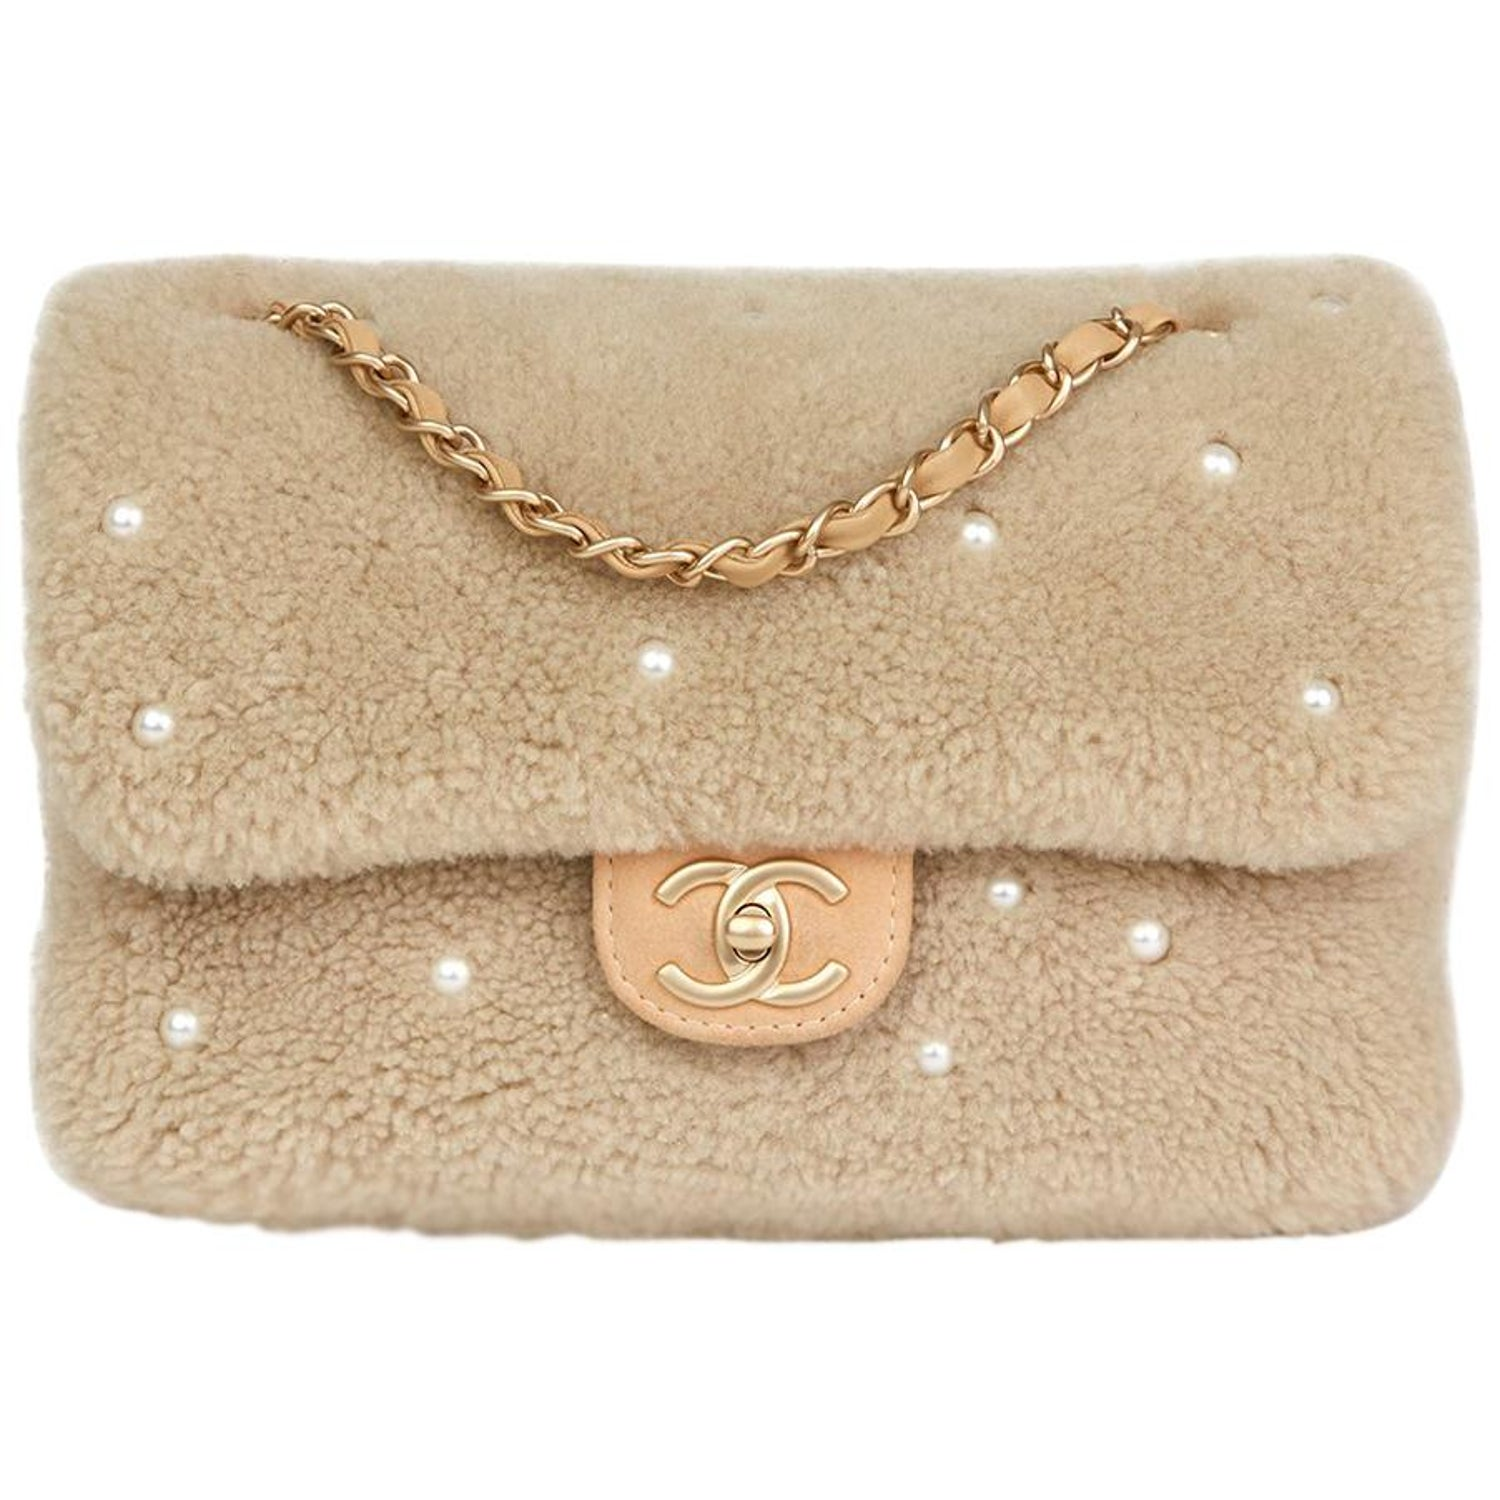 875774950570 Chanel Light Beige Pearl Shearling and Lambskin Single Flap Bag, 2014 at  1stdibs